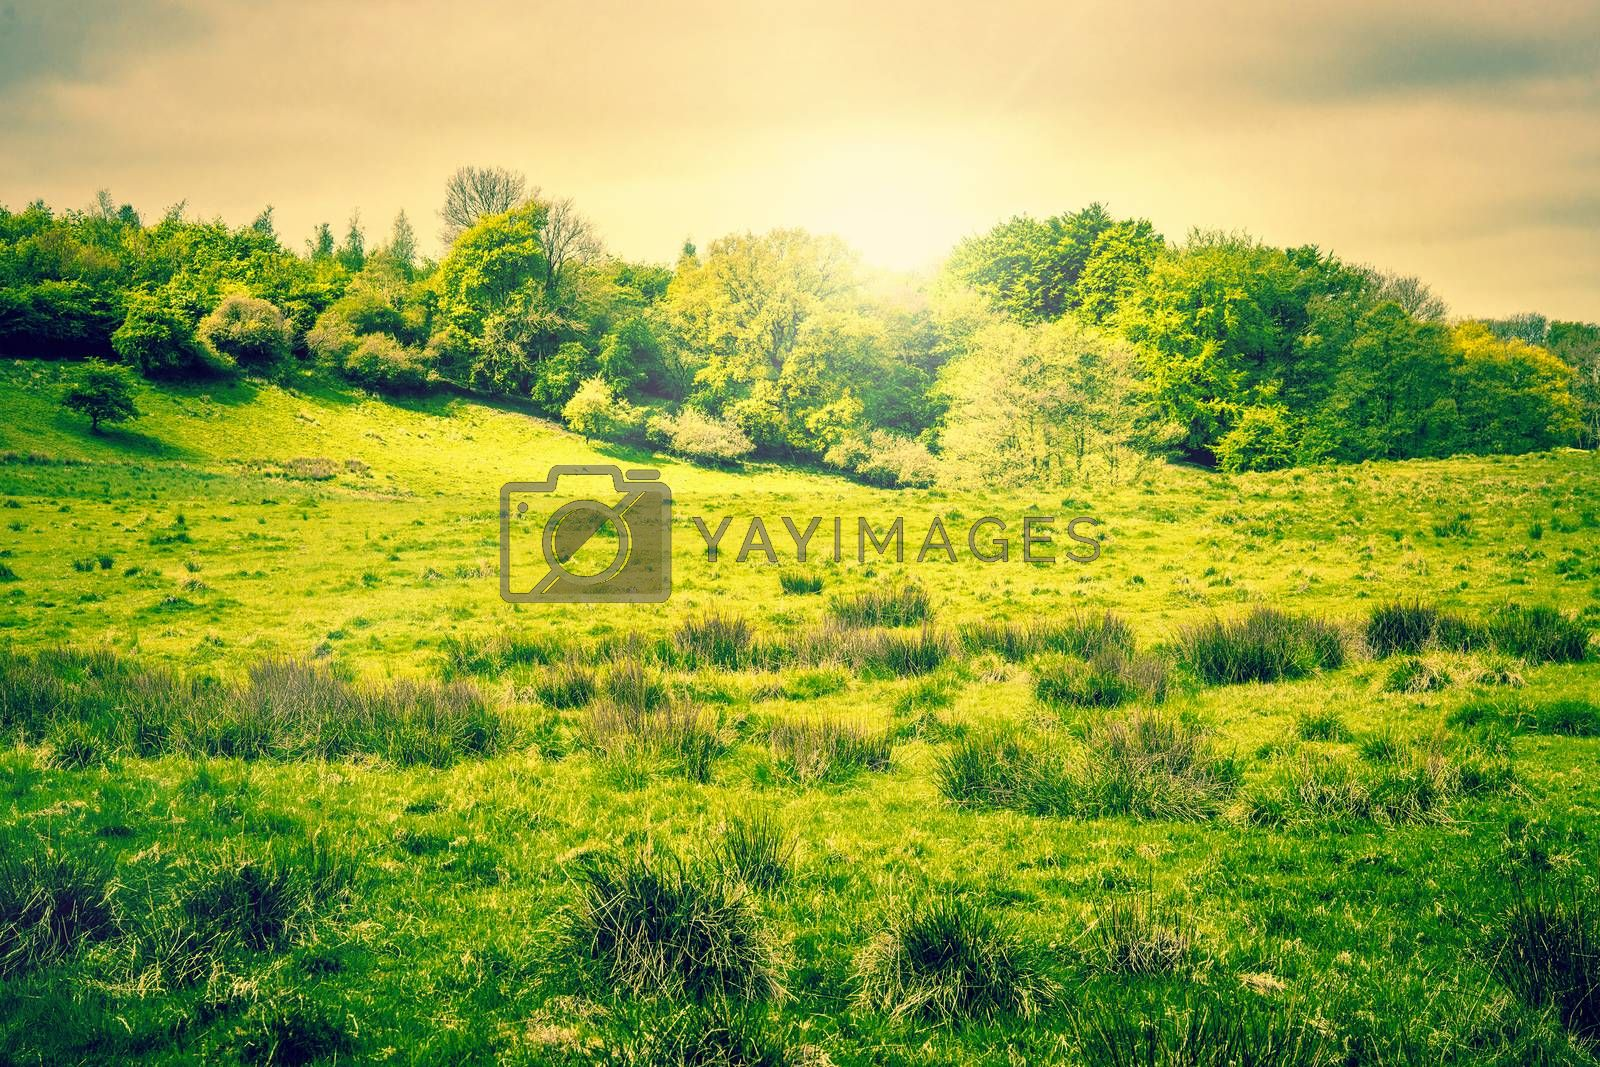 Sunshine over a countryside landscape with trees